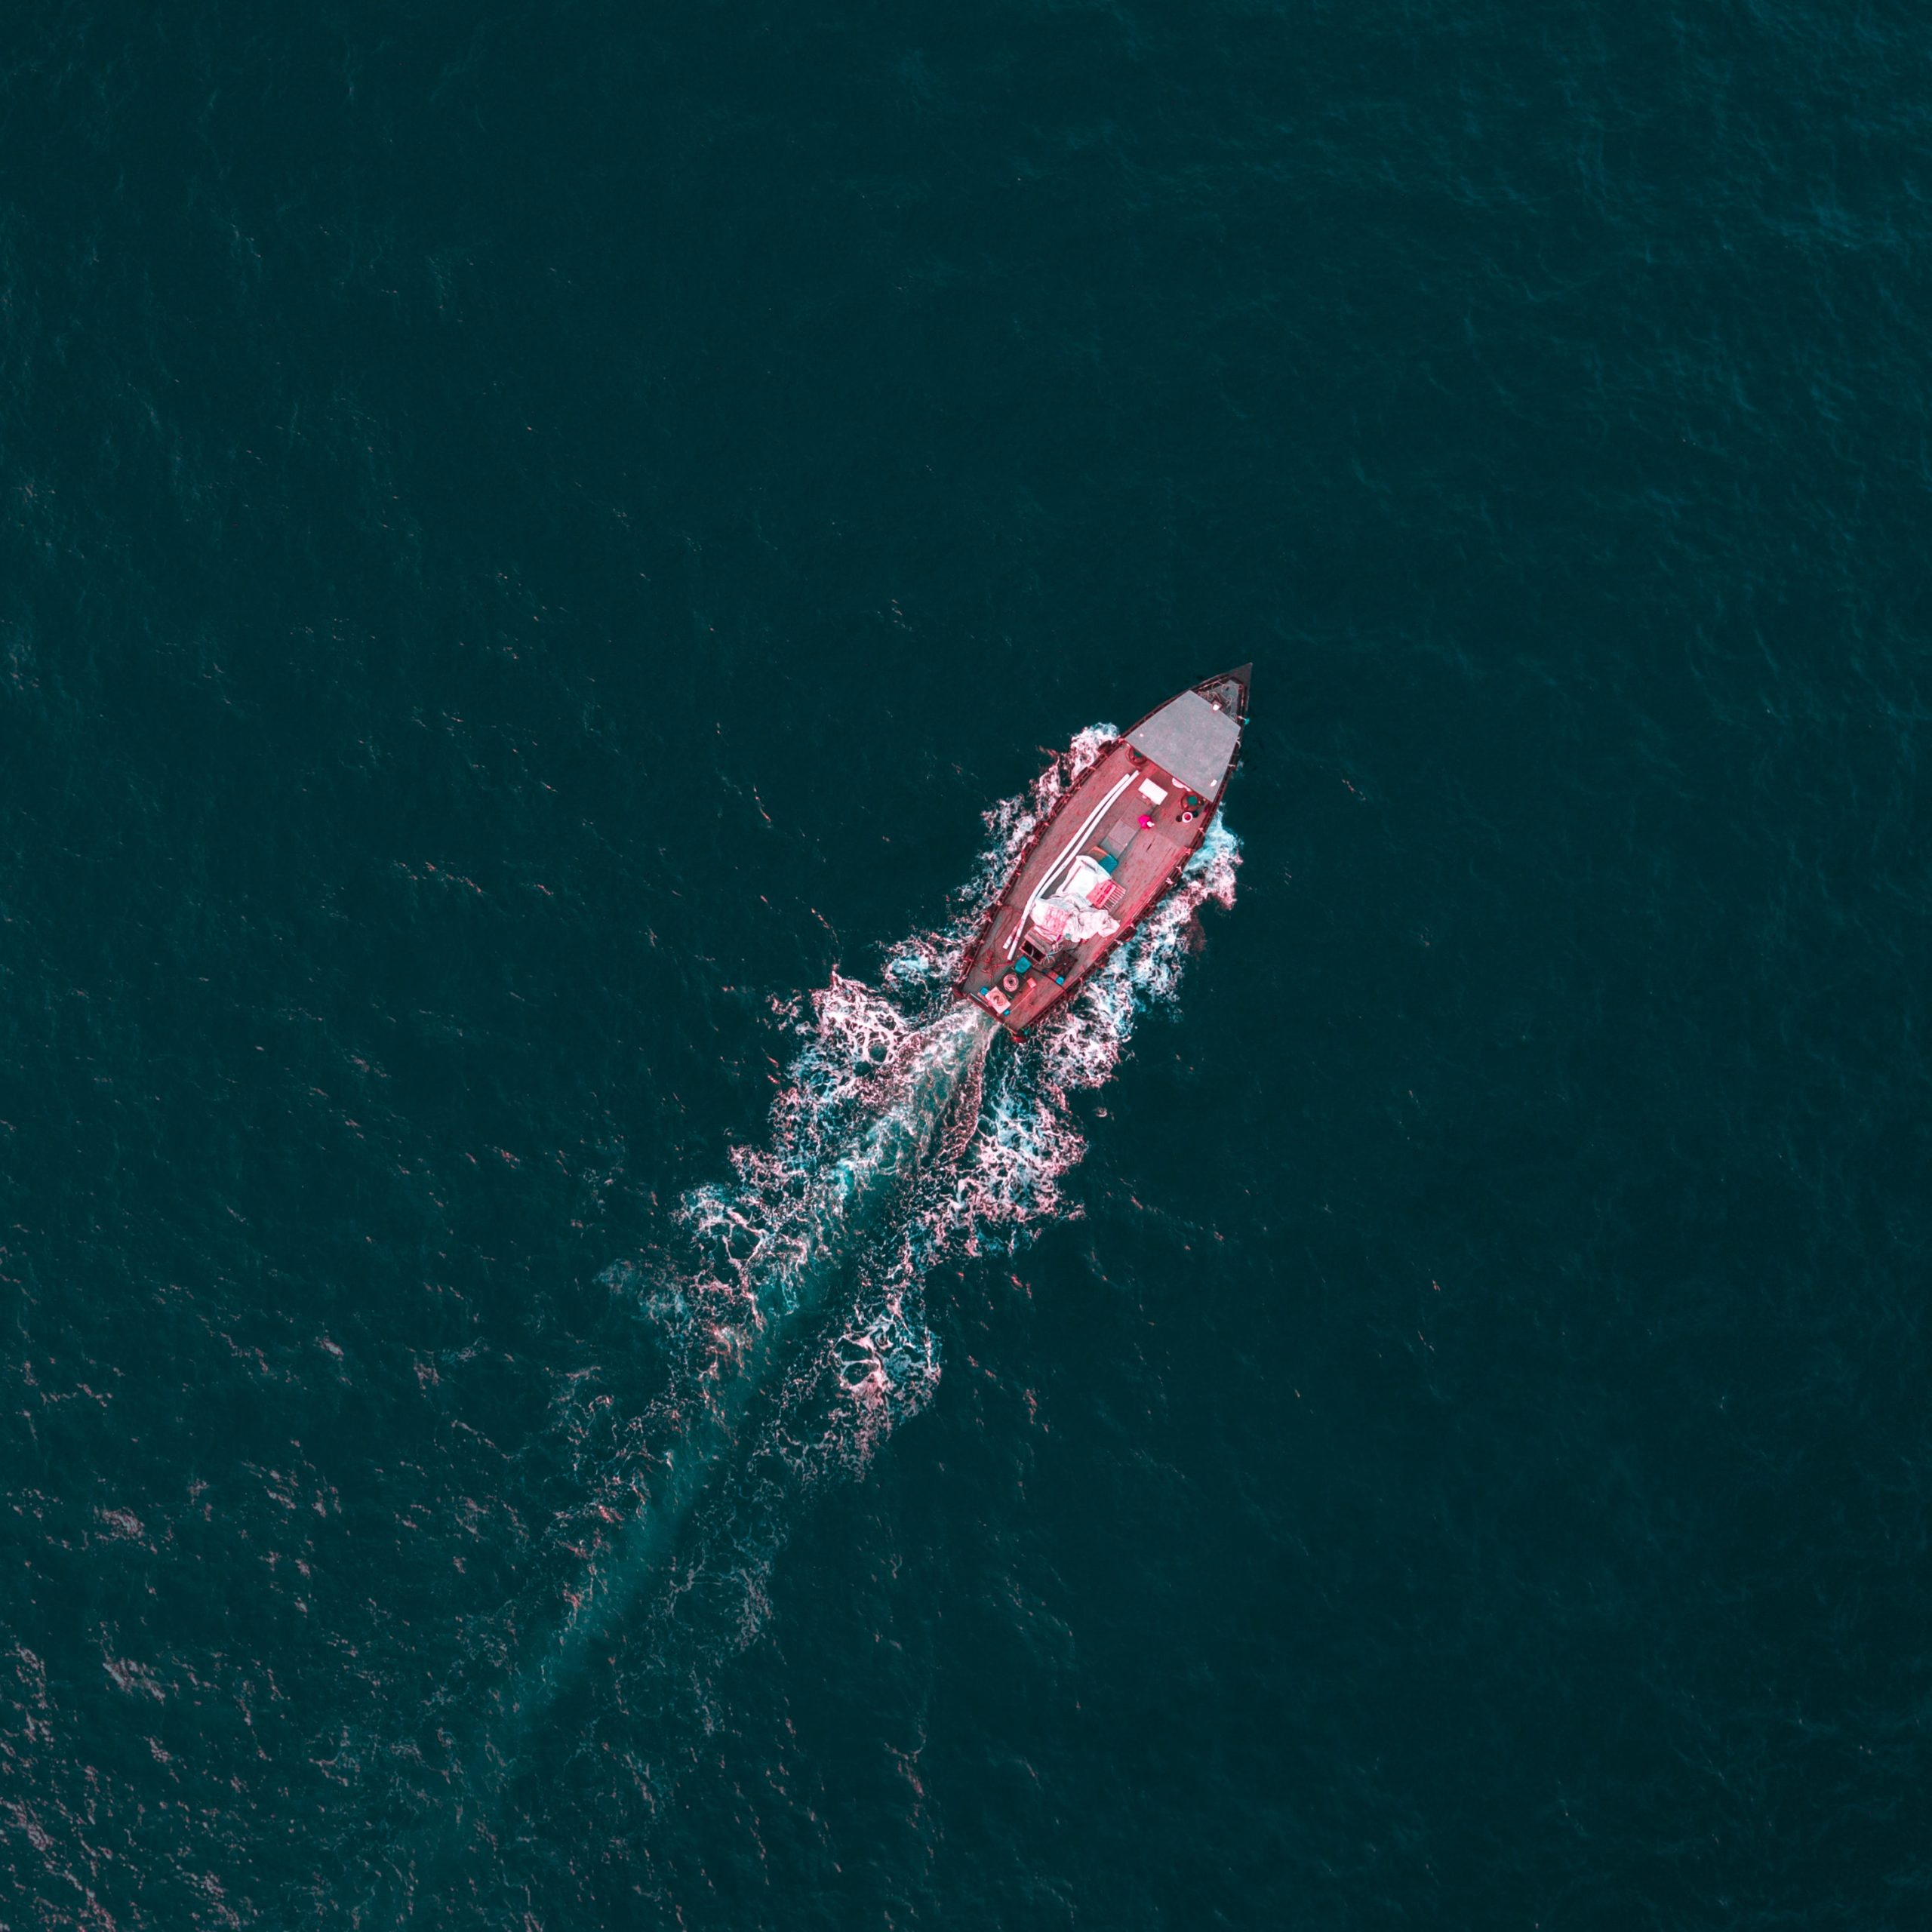 aerial view of boat on calm body of water